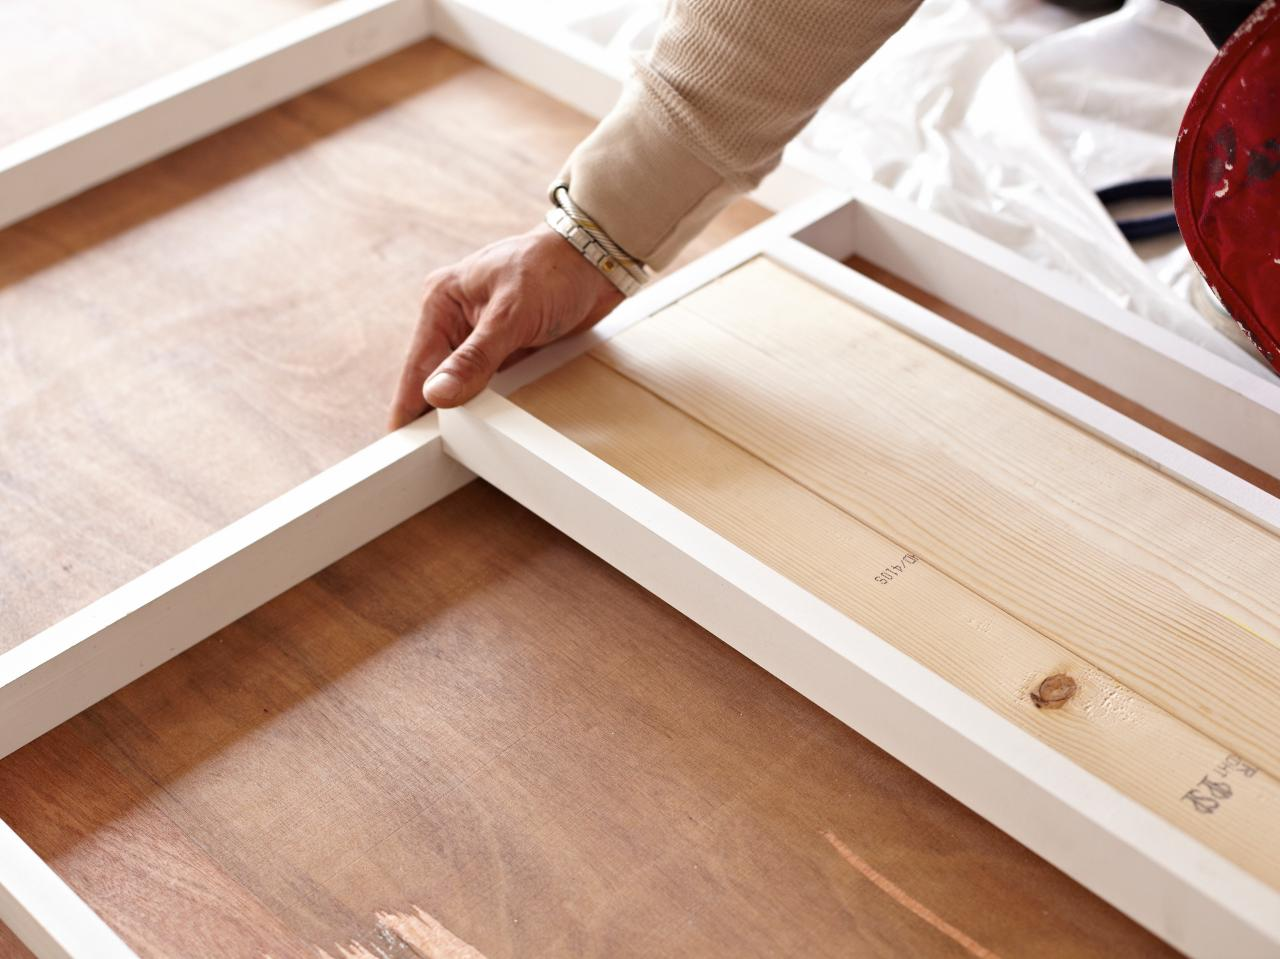 Learn How To Make A Sliding Door For Your Home For Under 40